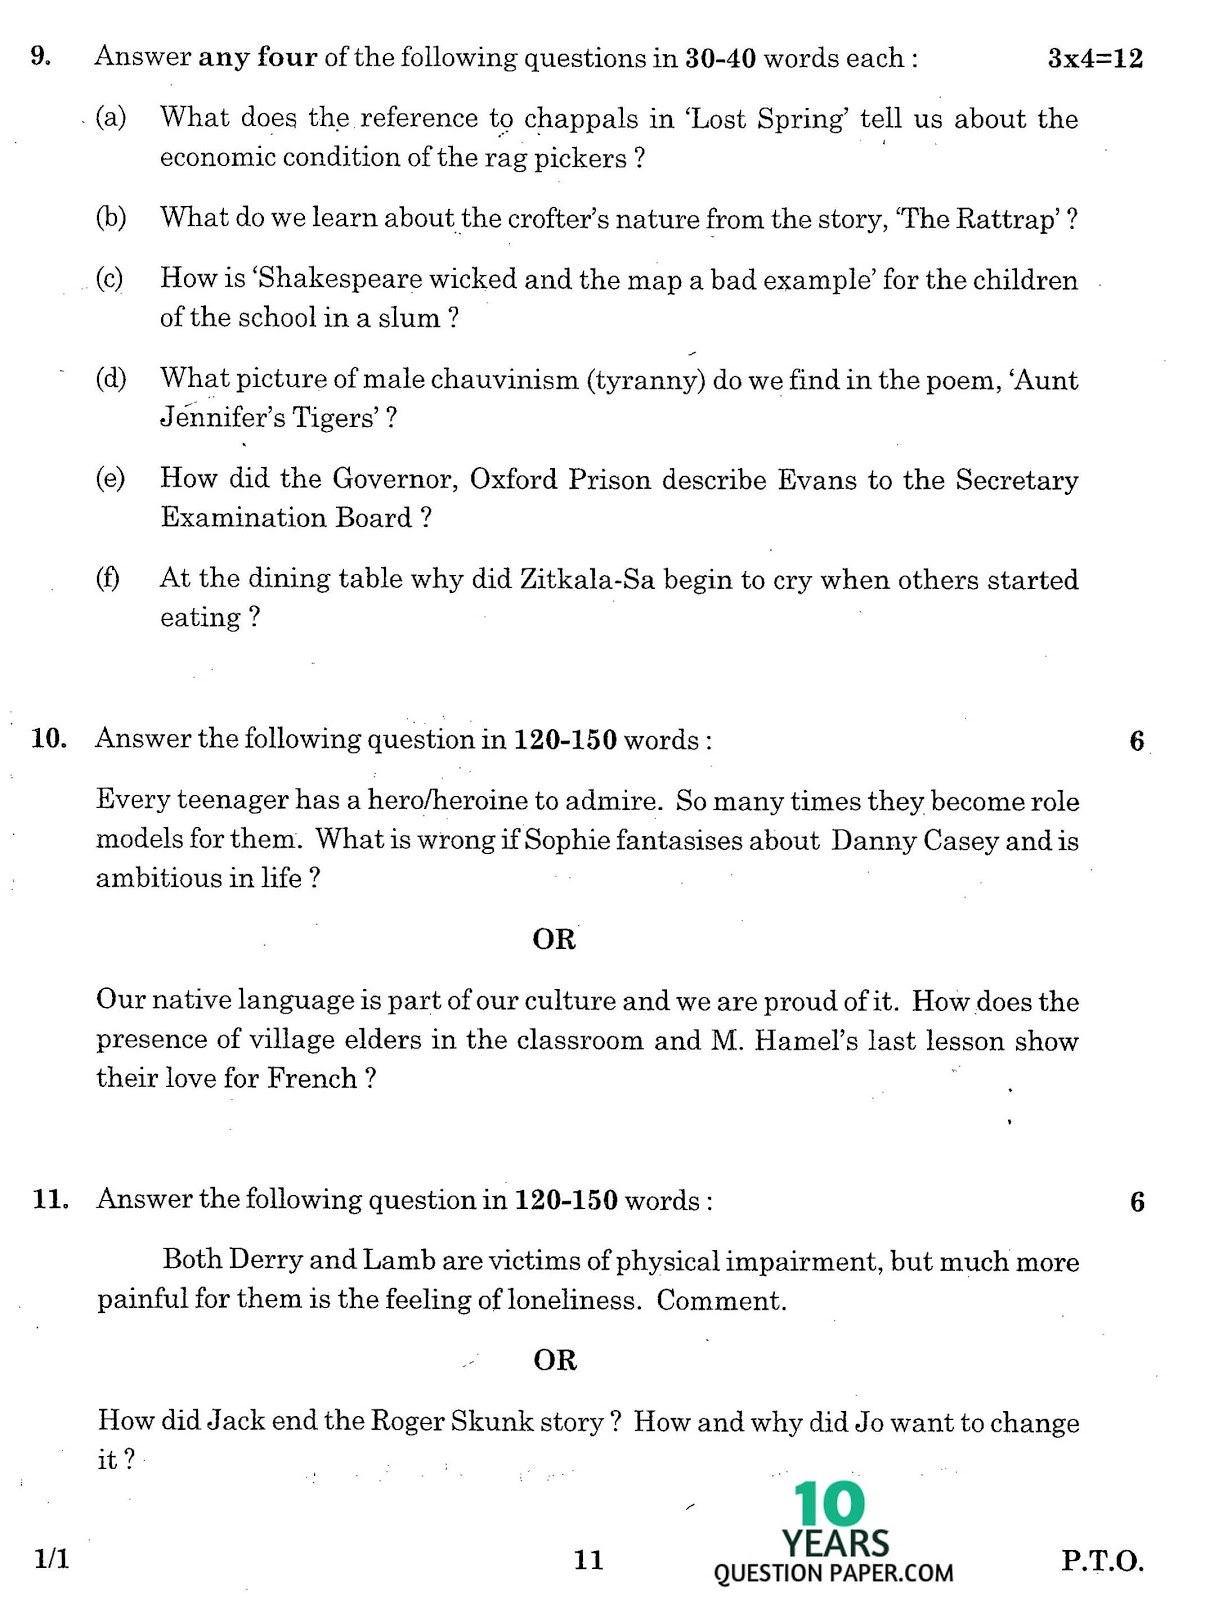 cbse class 12th 2016 English question paper